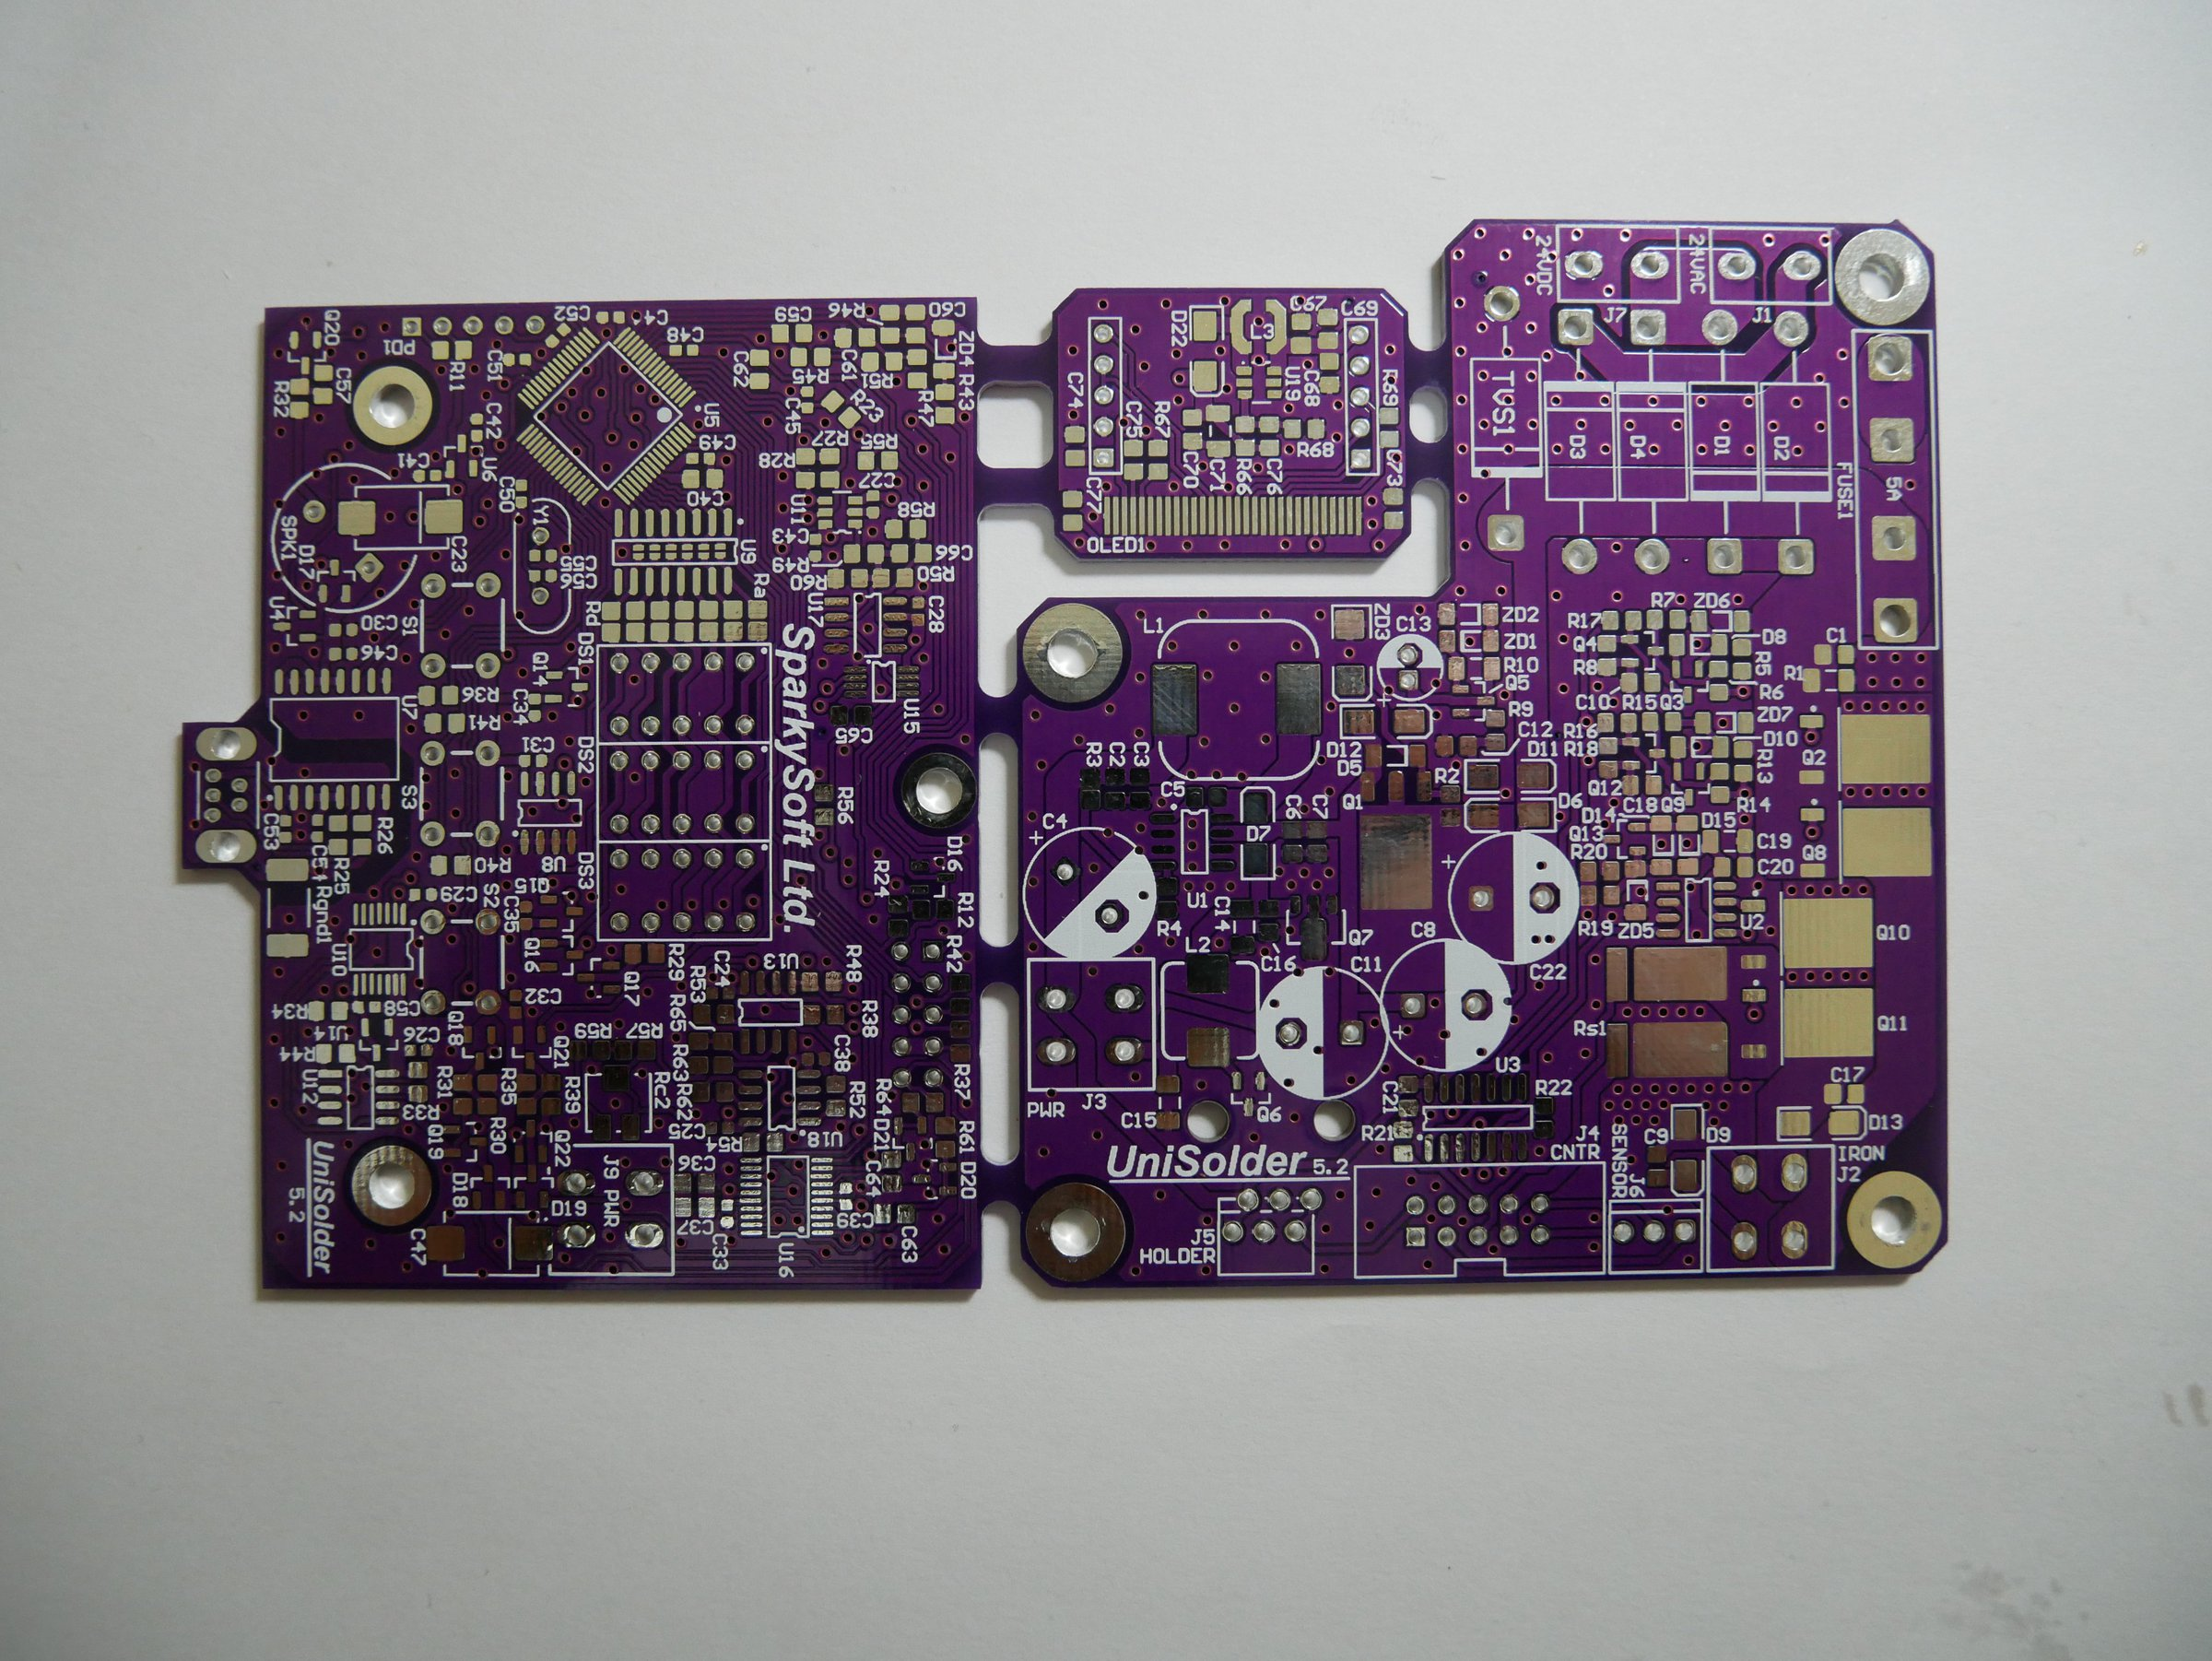 Unisolder 52 Diy Pcb Universal Soldering Station From Escorpio97 On Solder For Circuit Boards 1